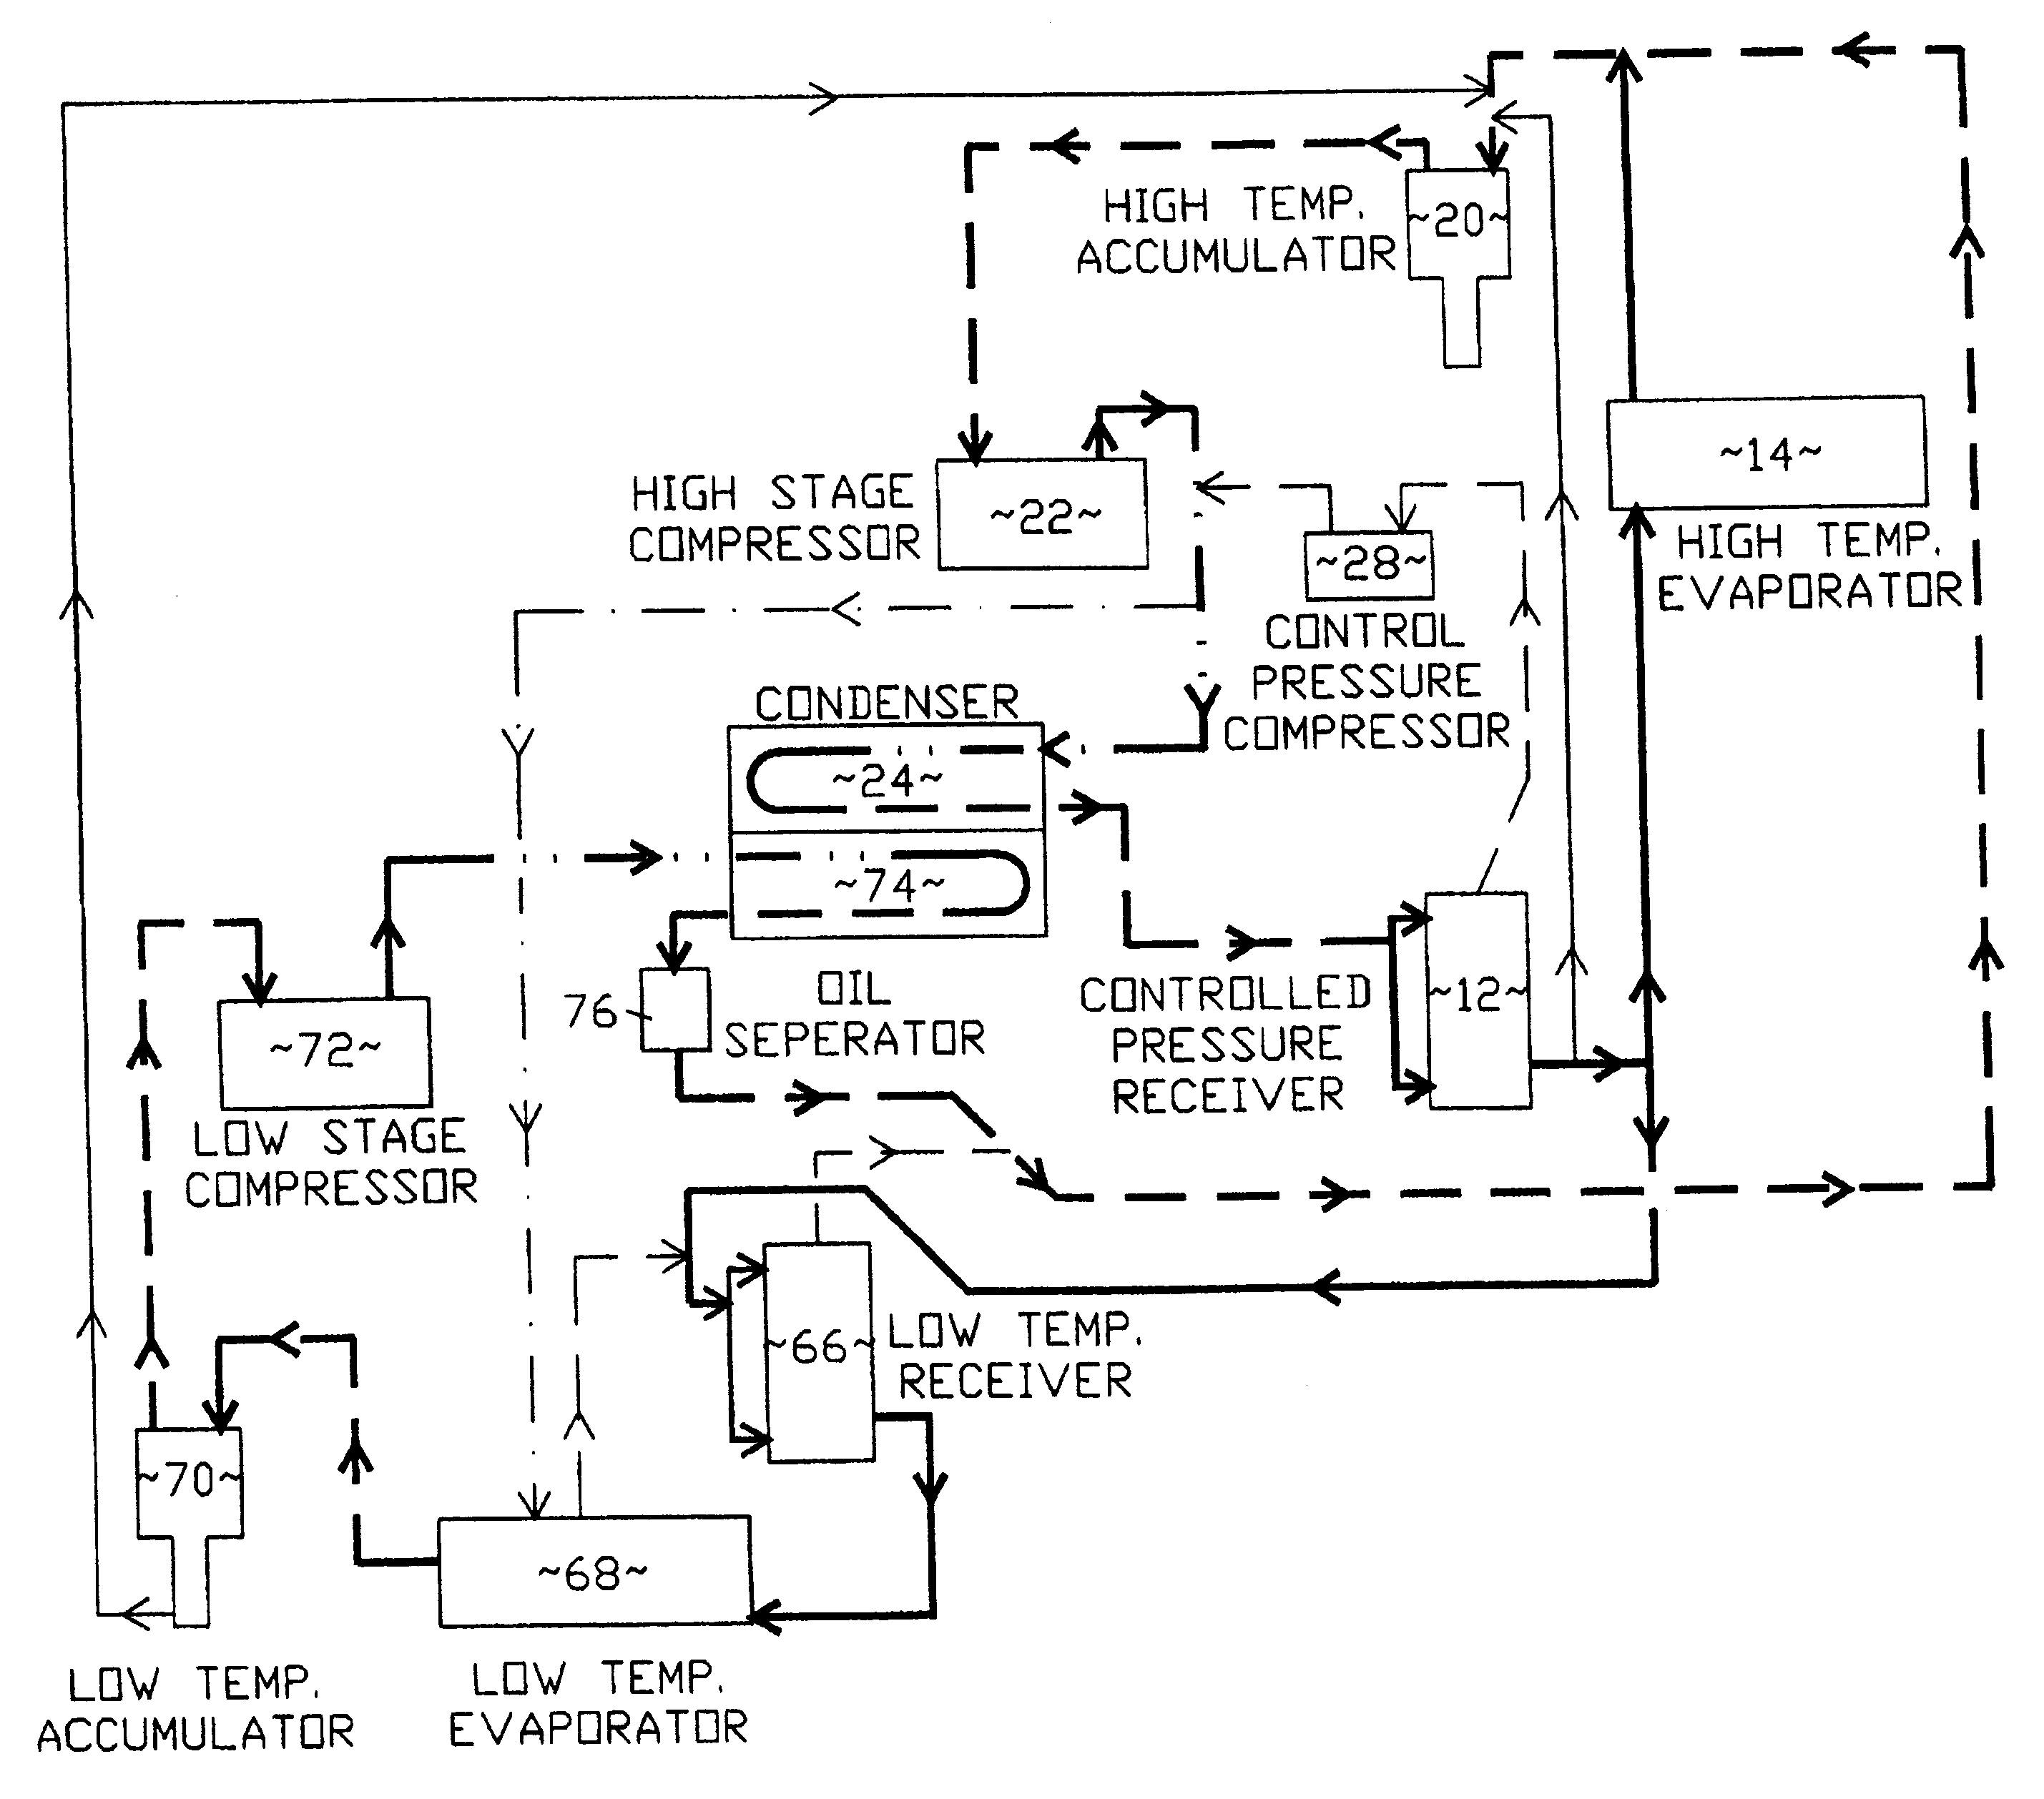 Refrigeration King Valve Diagram Wiring Air Pressor Hvac Superheat And Photos Of Manual